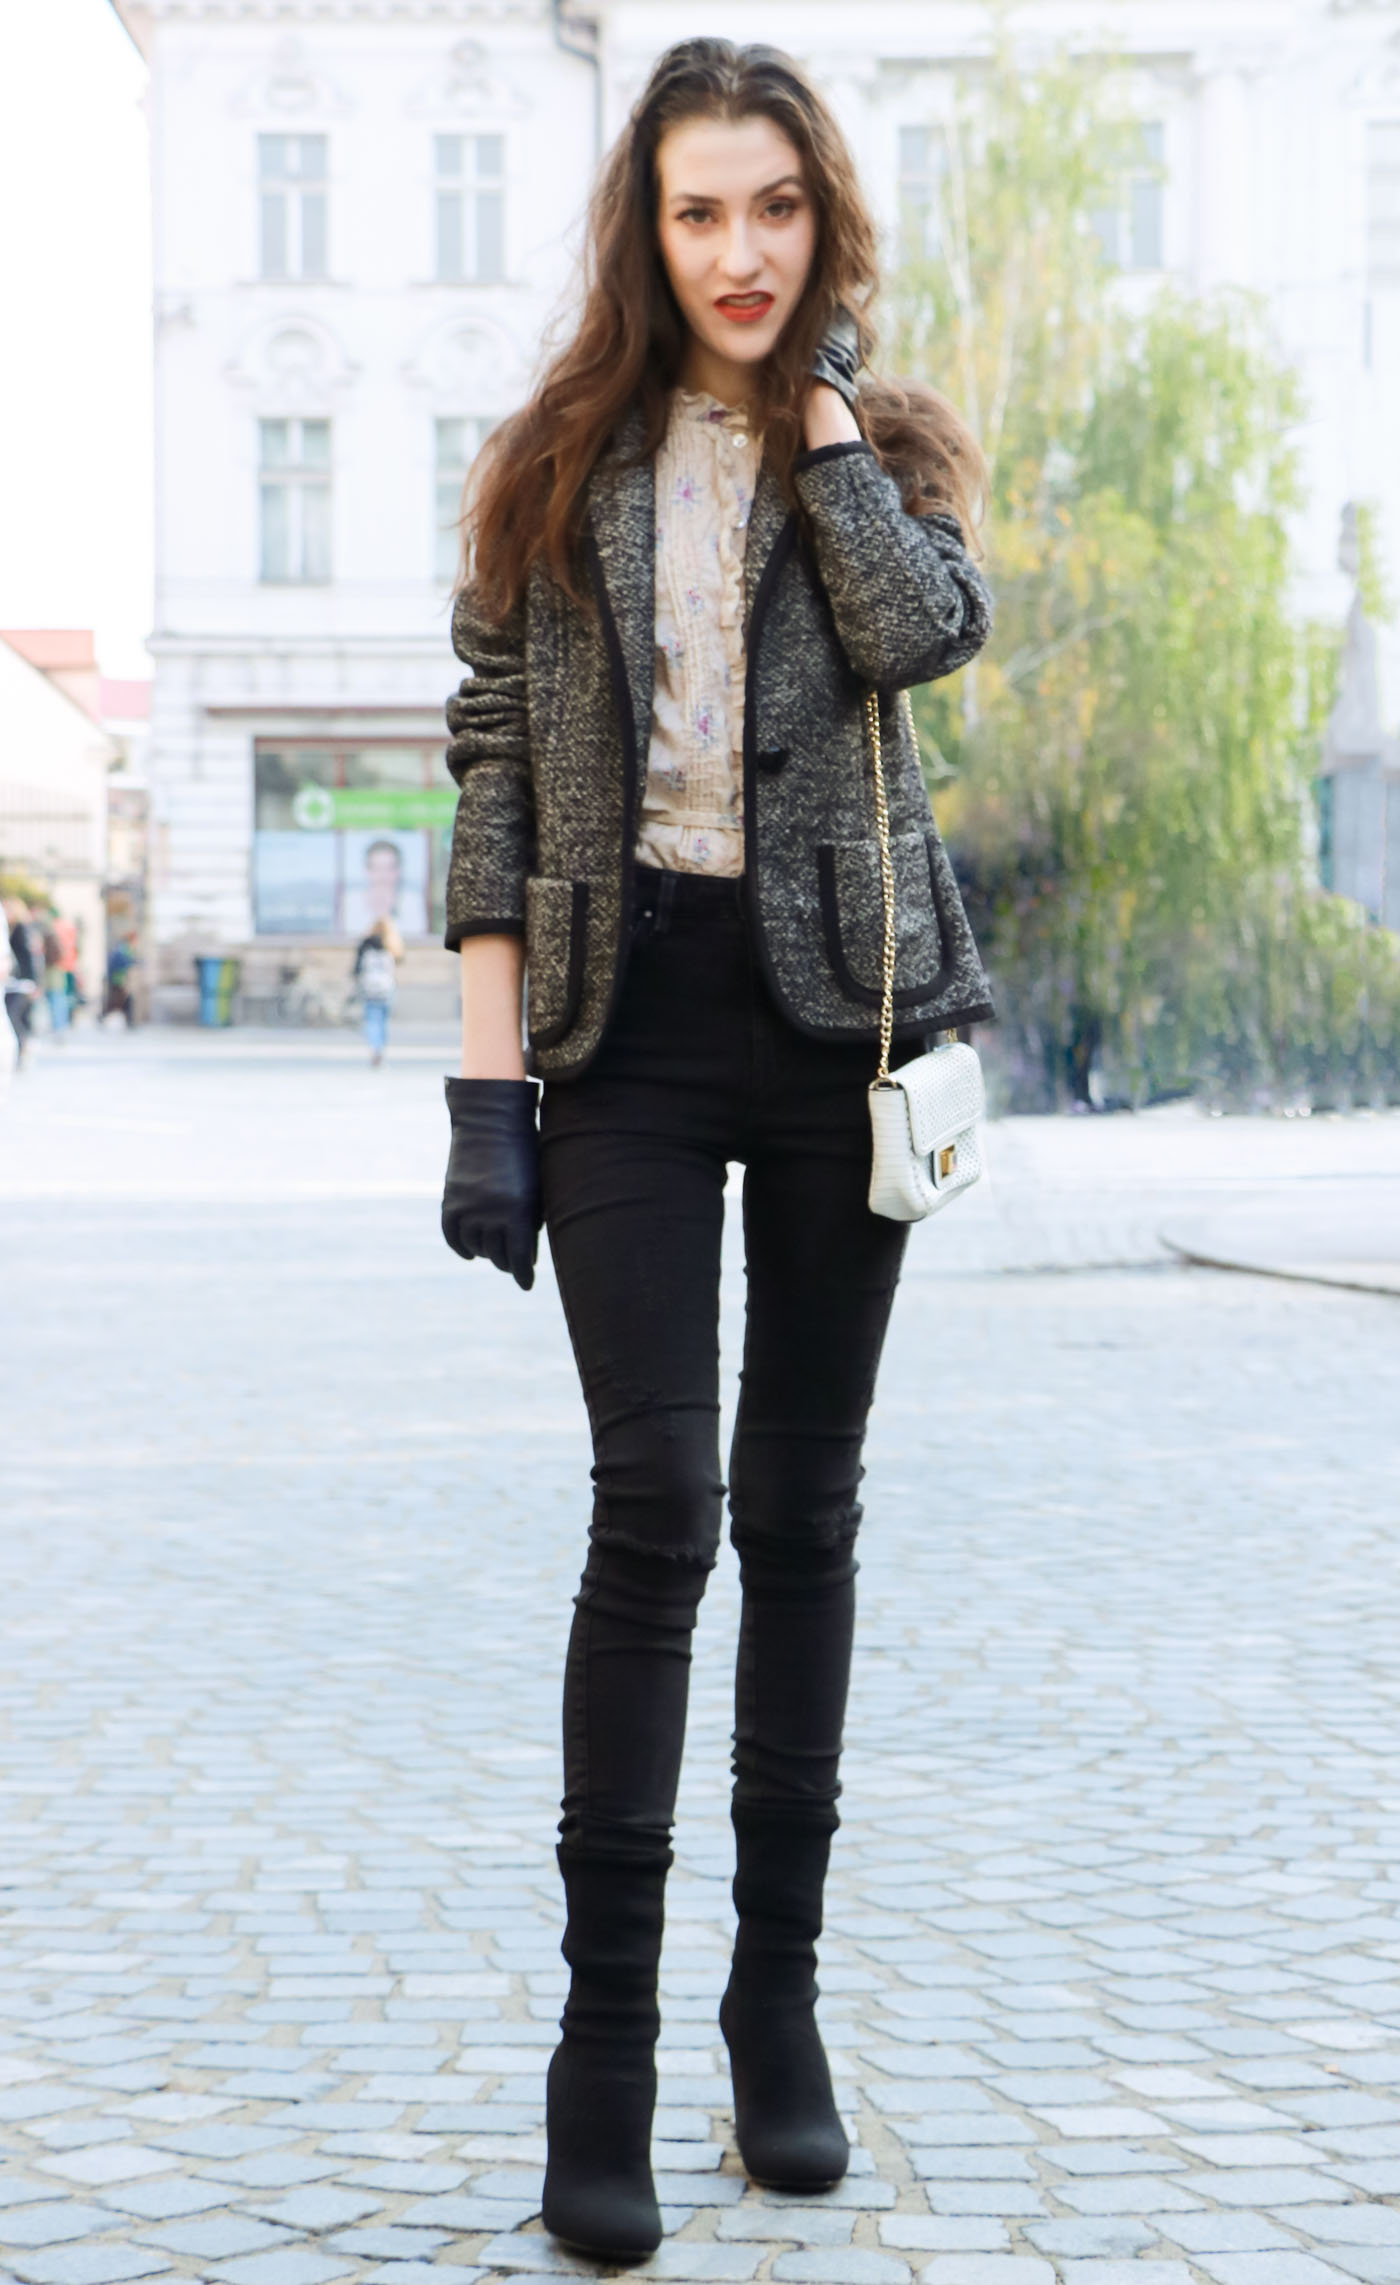 Fashion Blogger Veronika Lipar of Brunette from Wall wearing black skinny jeans, black sock ankle boots and statement blouse under tweed black and white blazer